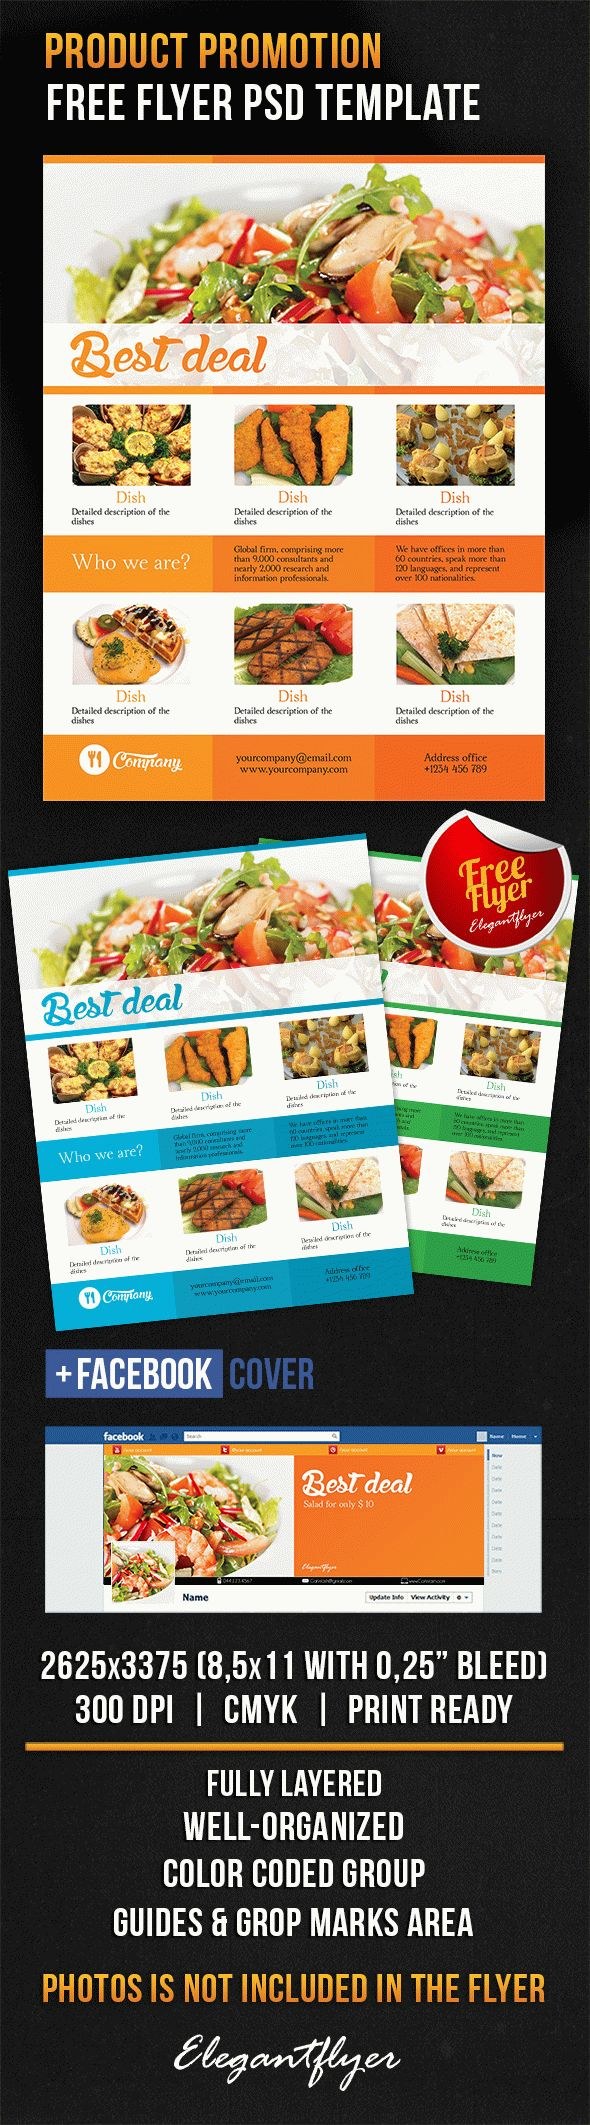 Product Promotion – Free Flyer PSD Template